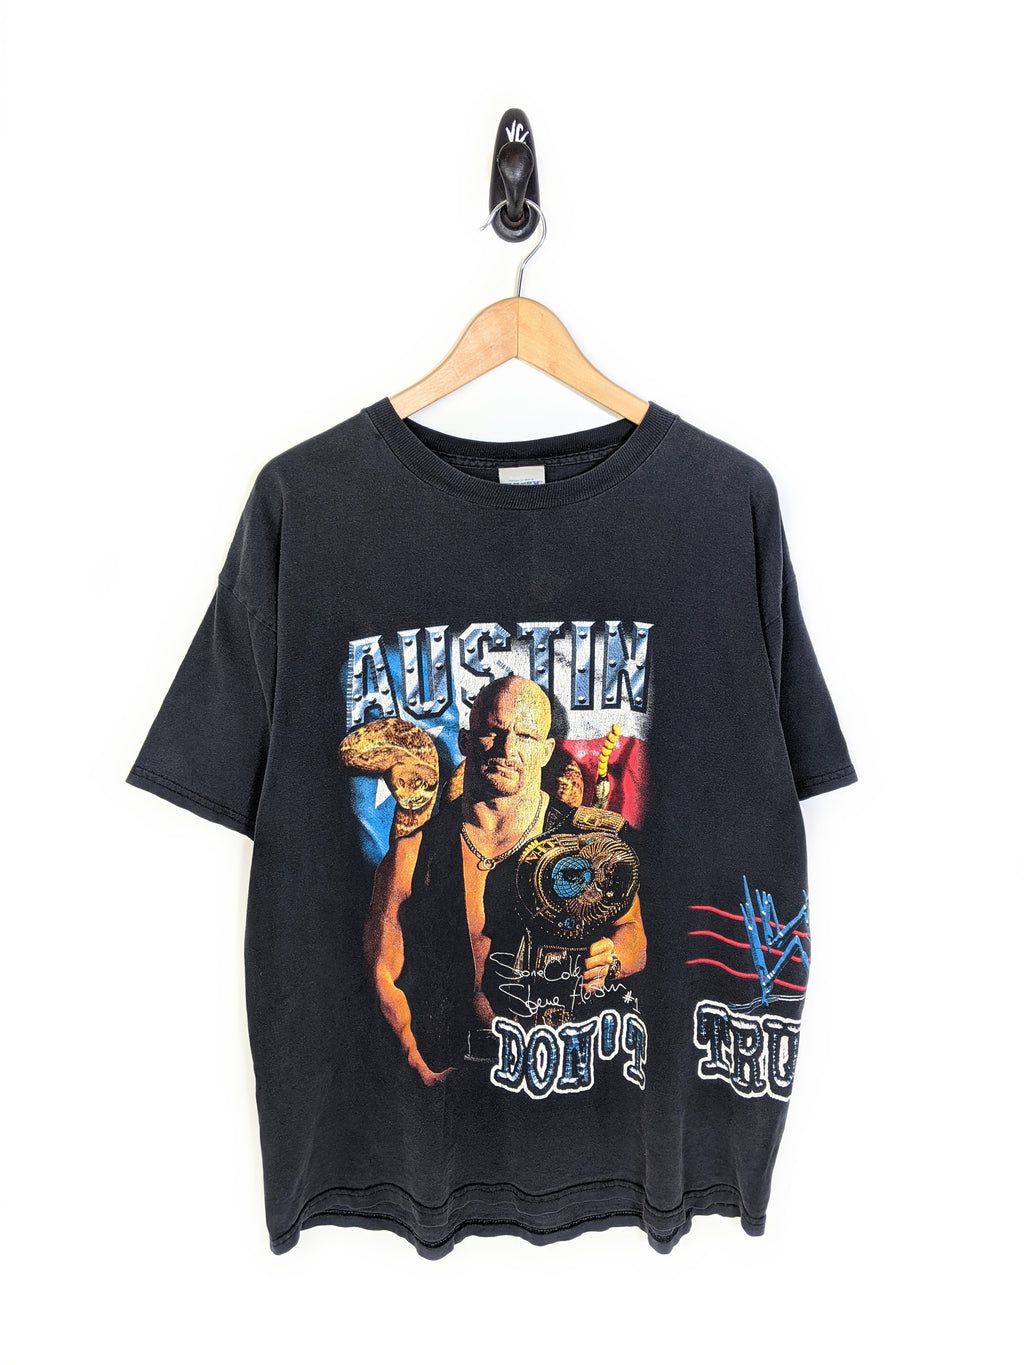 Cold Stone Don't Trust All Over Print Tee (XL)